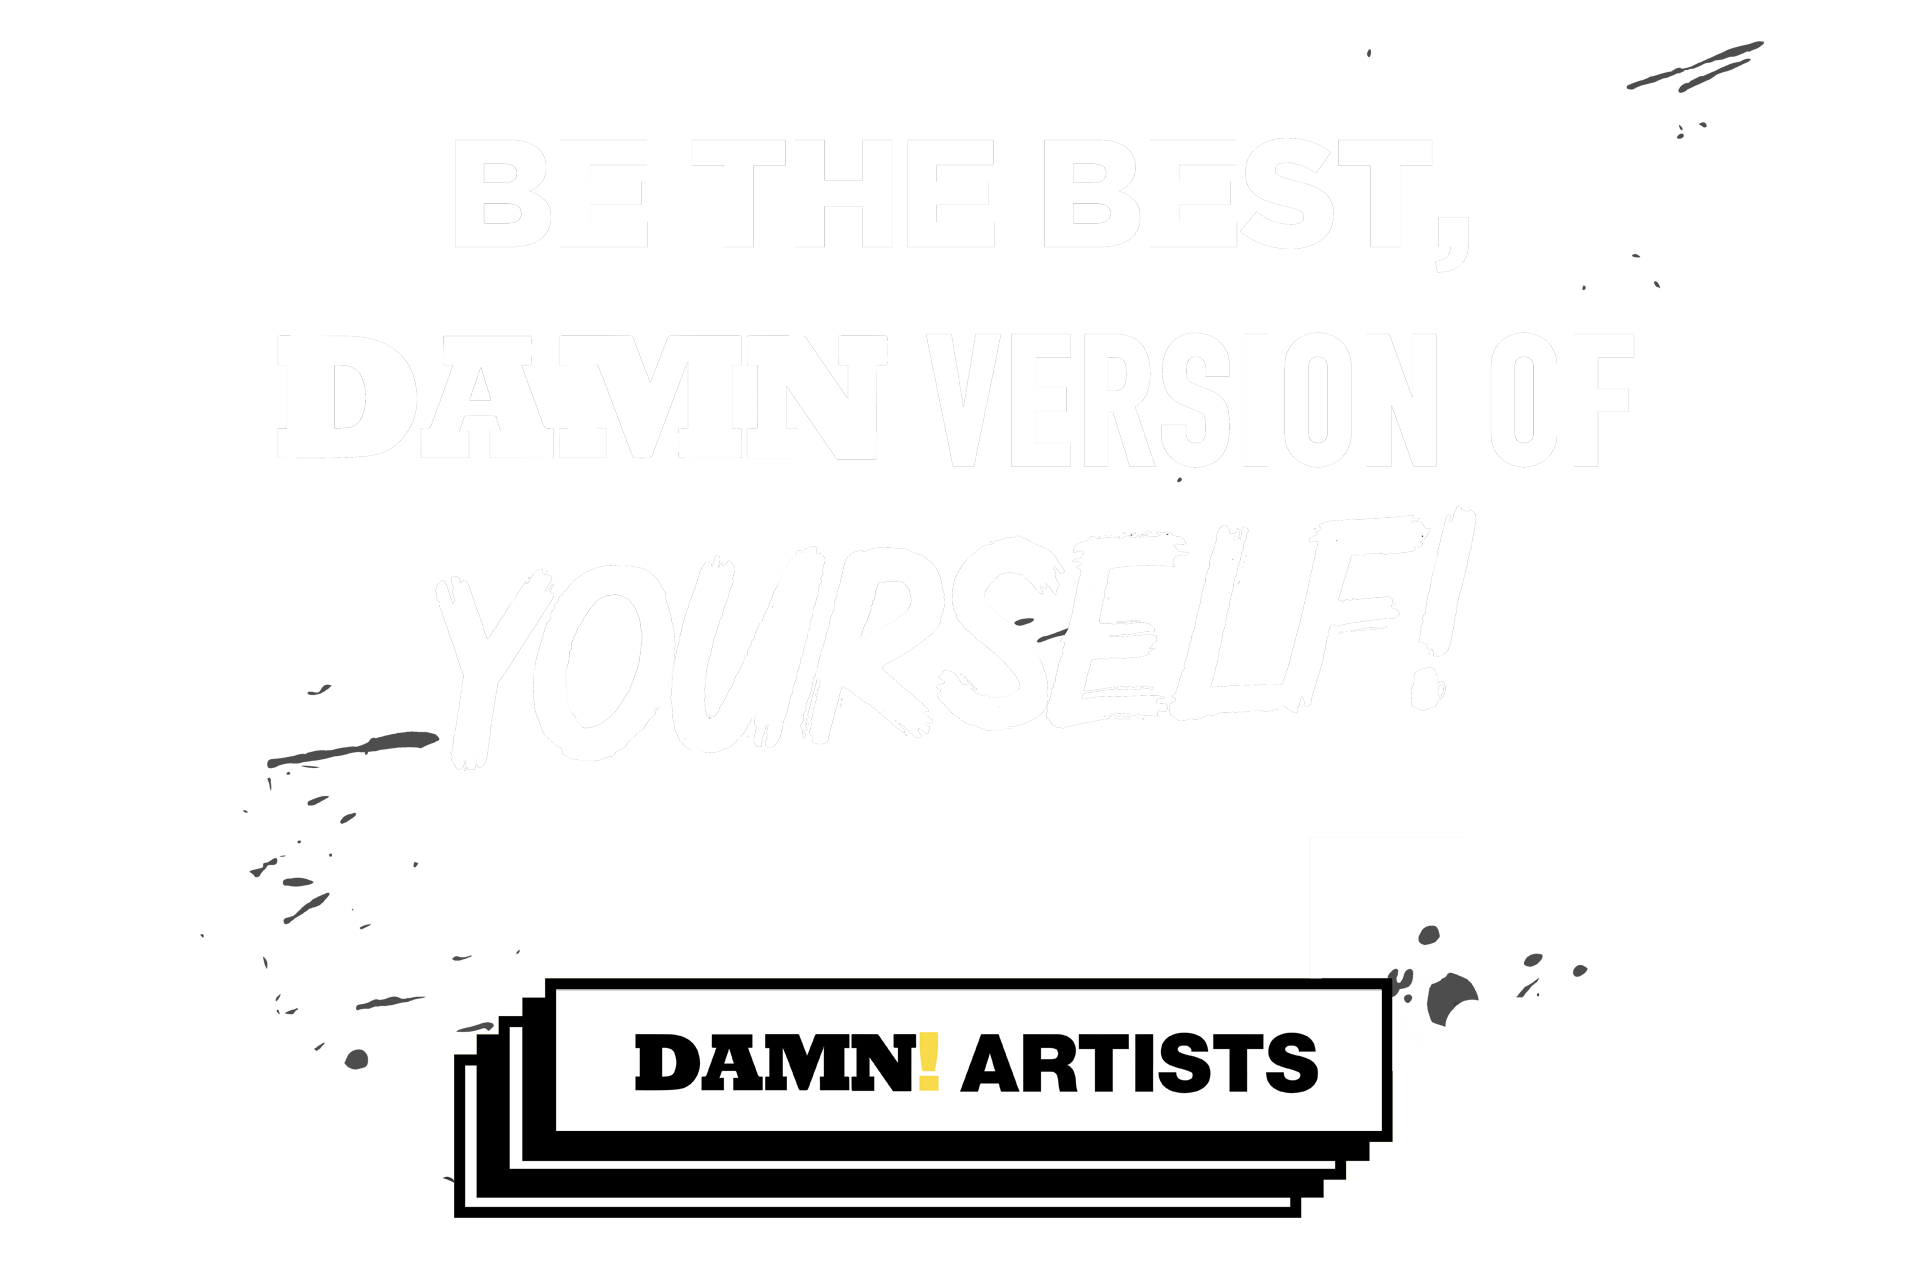 Be the Best, DAMN Version of Yourself!